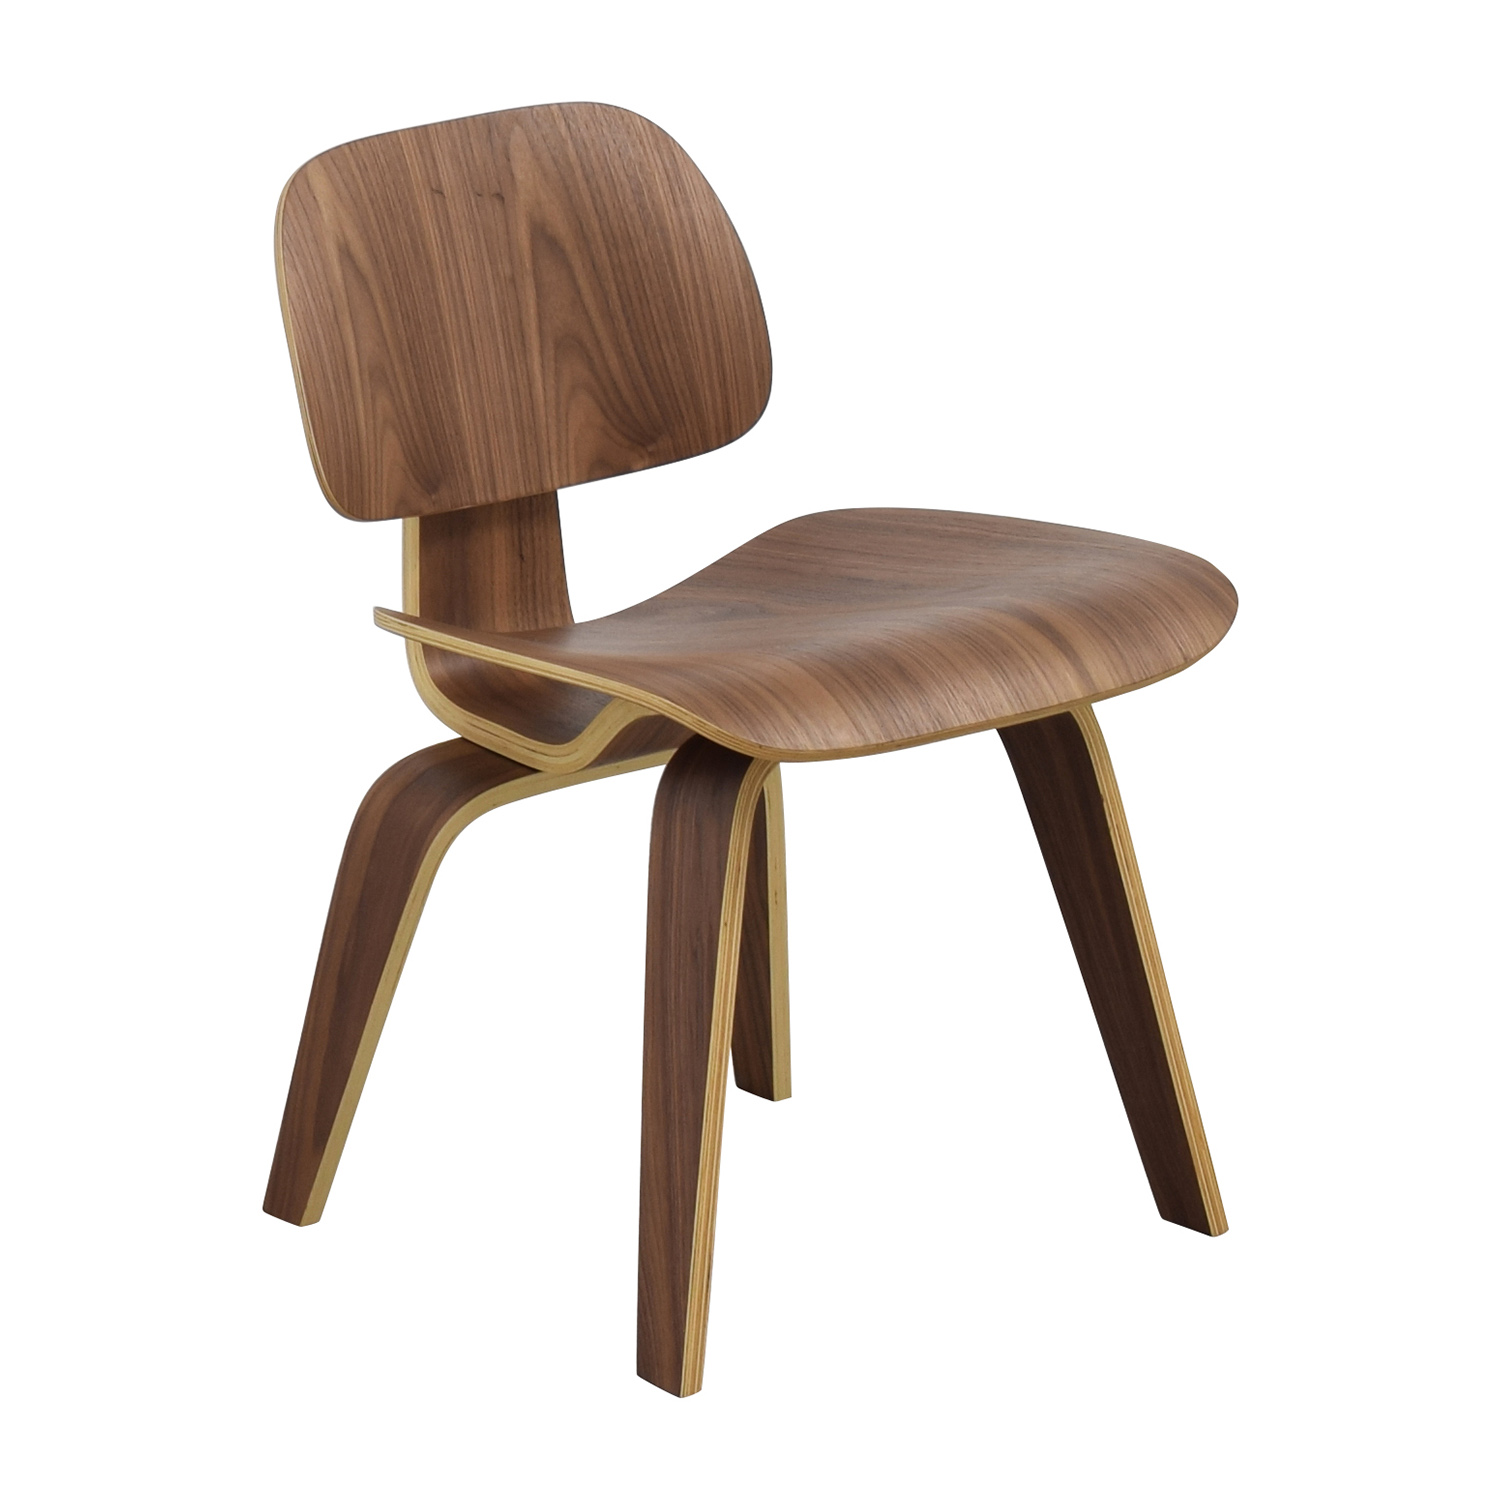 InMod InMod Plywood Dining Chair with Wood Legs